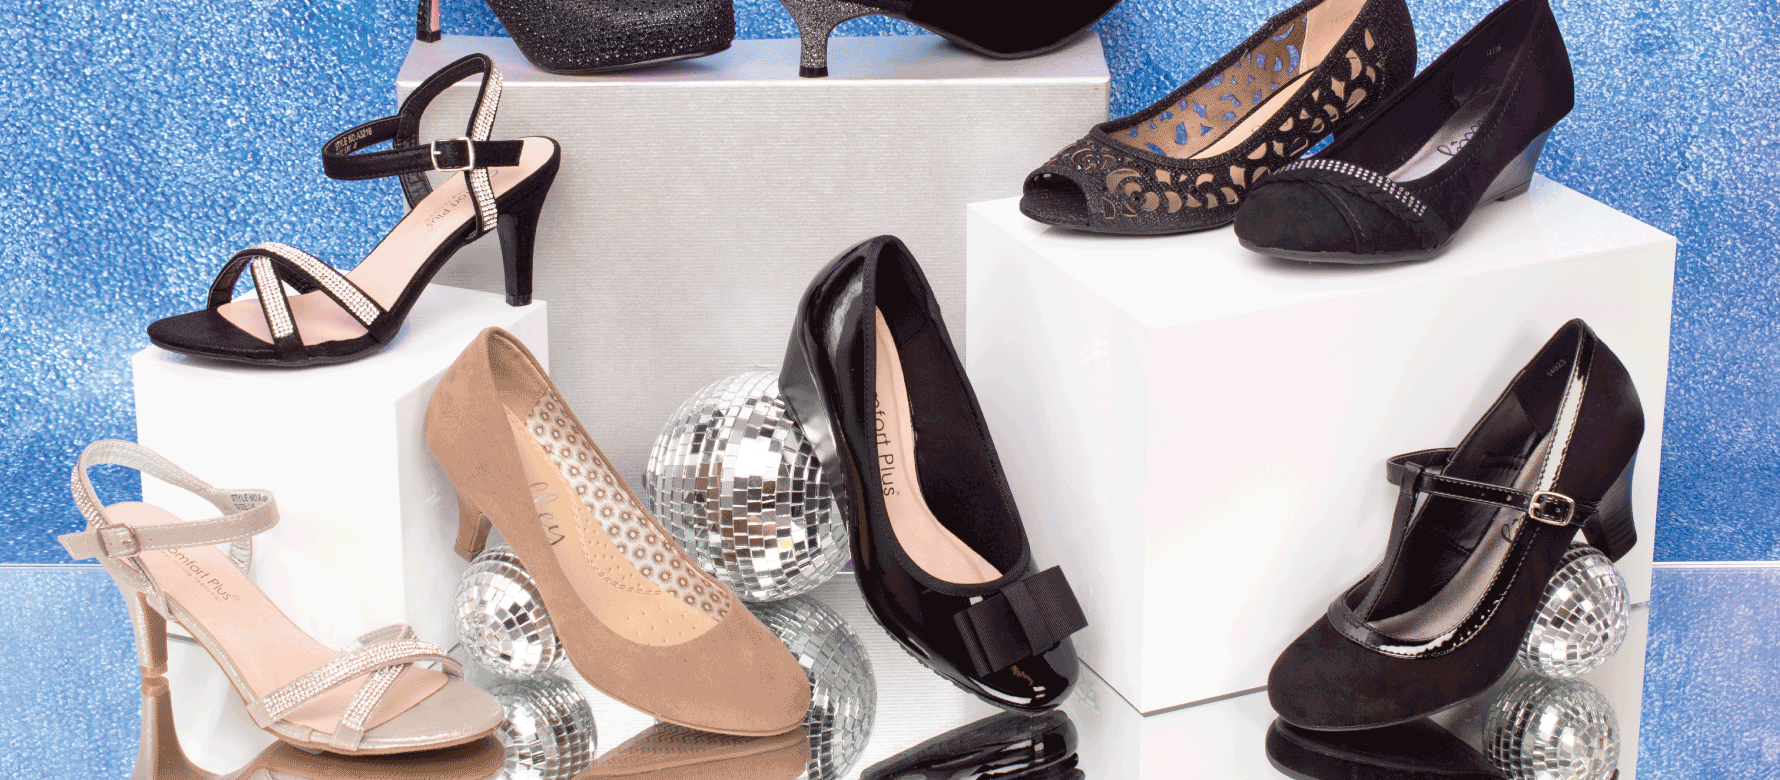 9ae05d30747 How to Wear Sparkly Shoes: Styling Party Shoes | Shoe Zone Blog